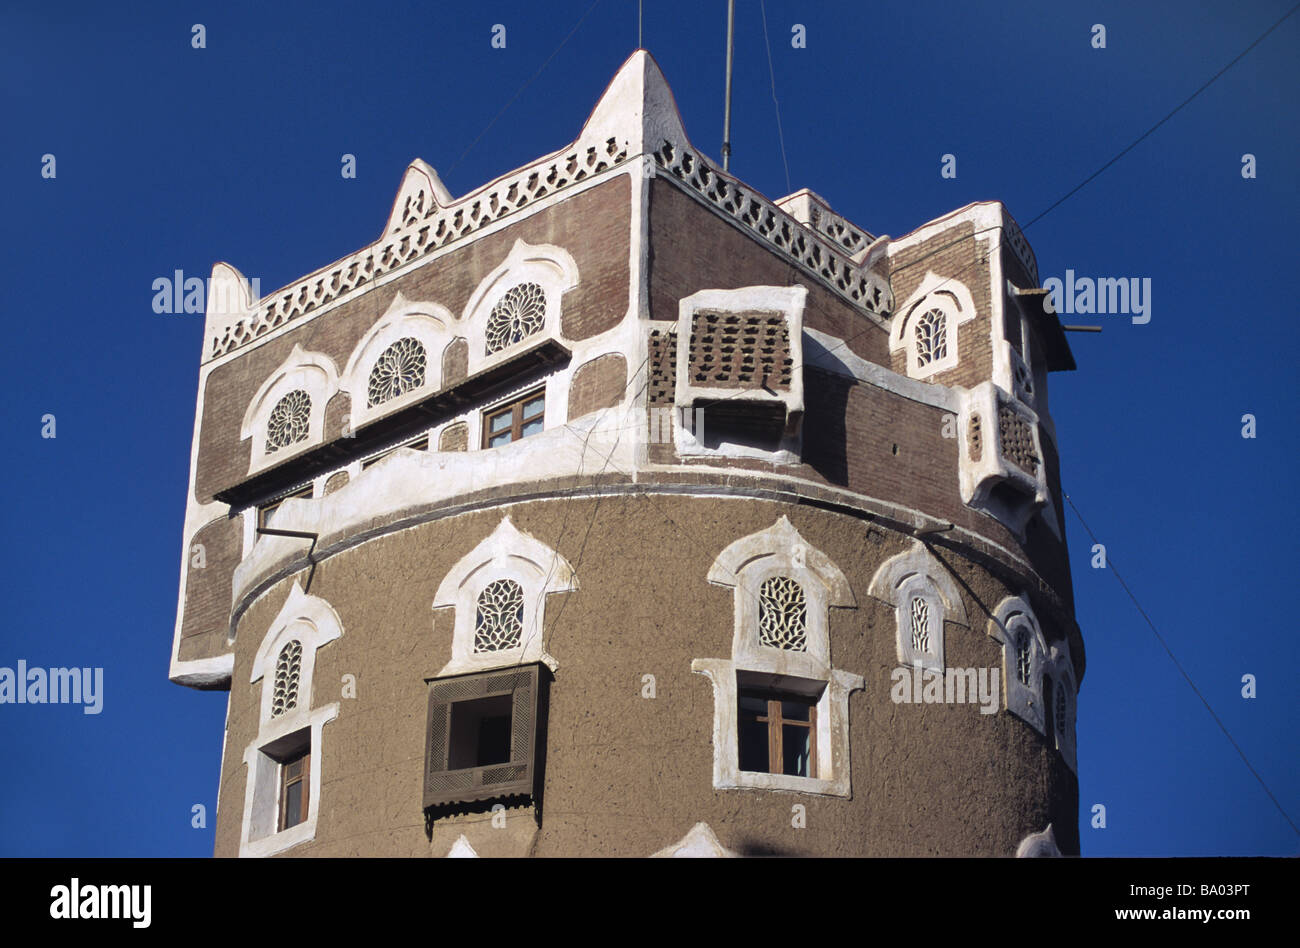 Square Room on Top of Round Adobe Mud Brick Tower House with Decorated Windows, Sana'a or San'a, Capital - Stock Image